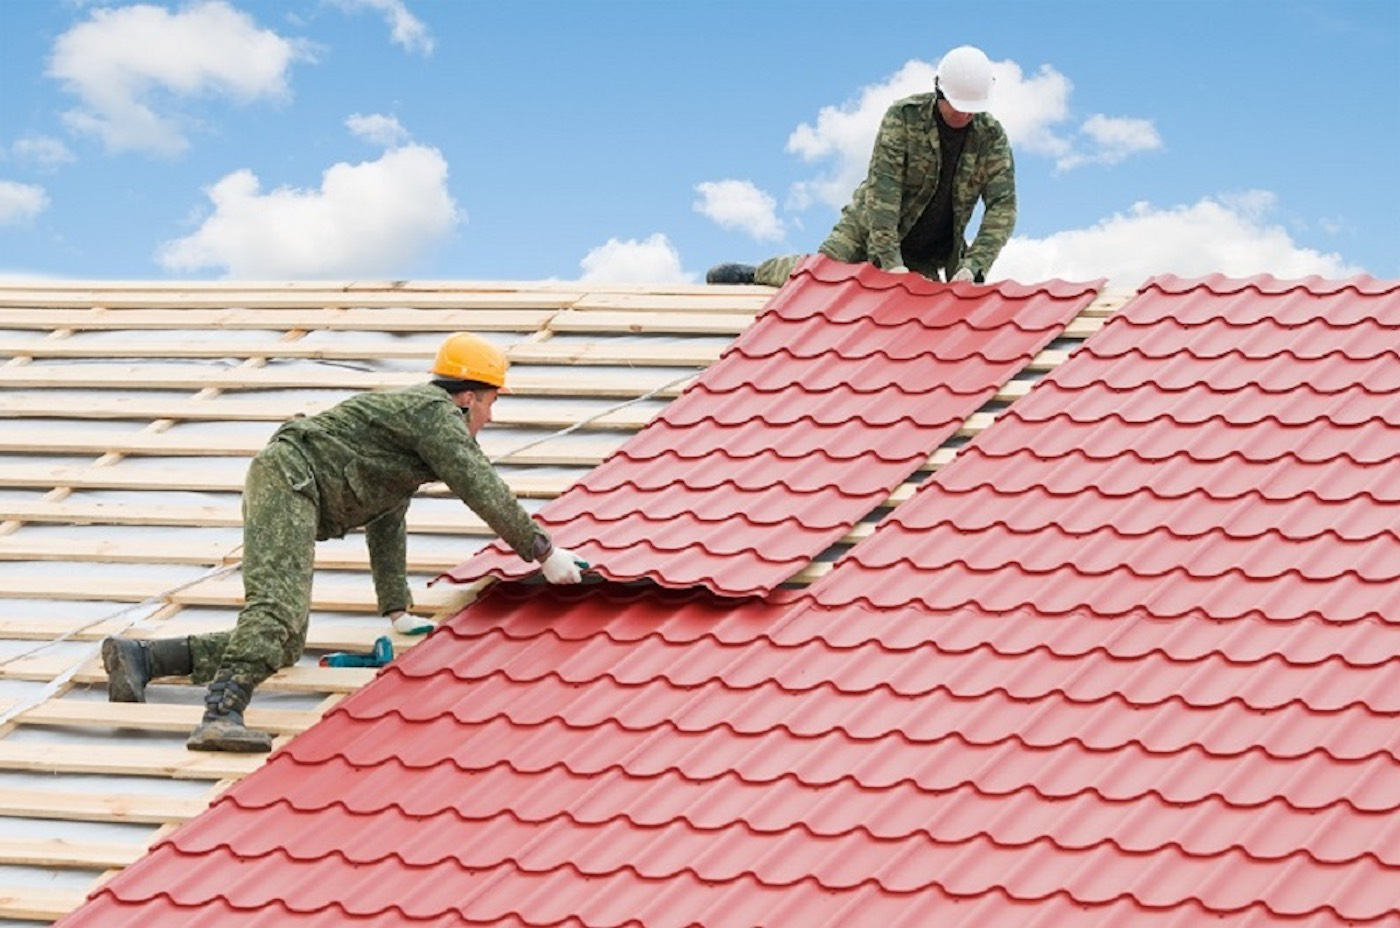 Preparations To Be Made For Roof Restoration Plans